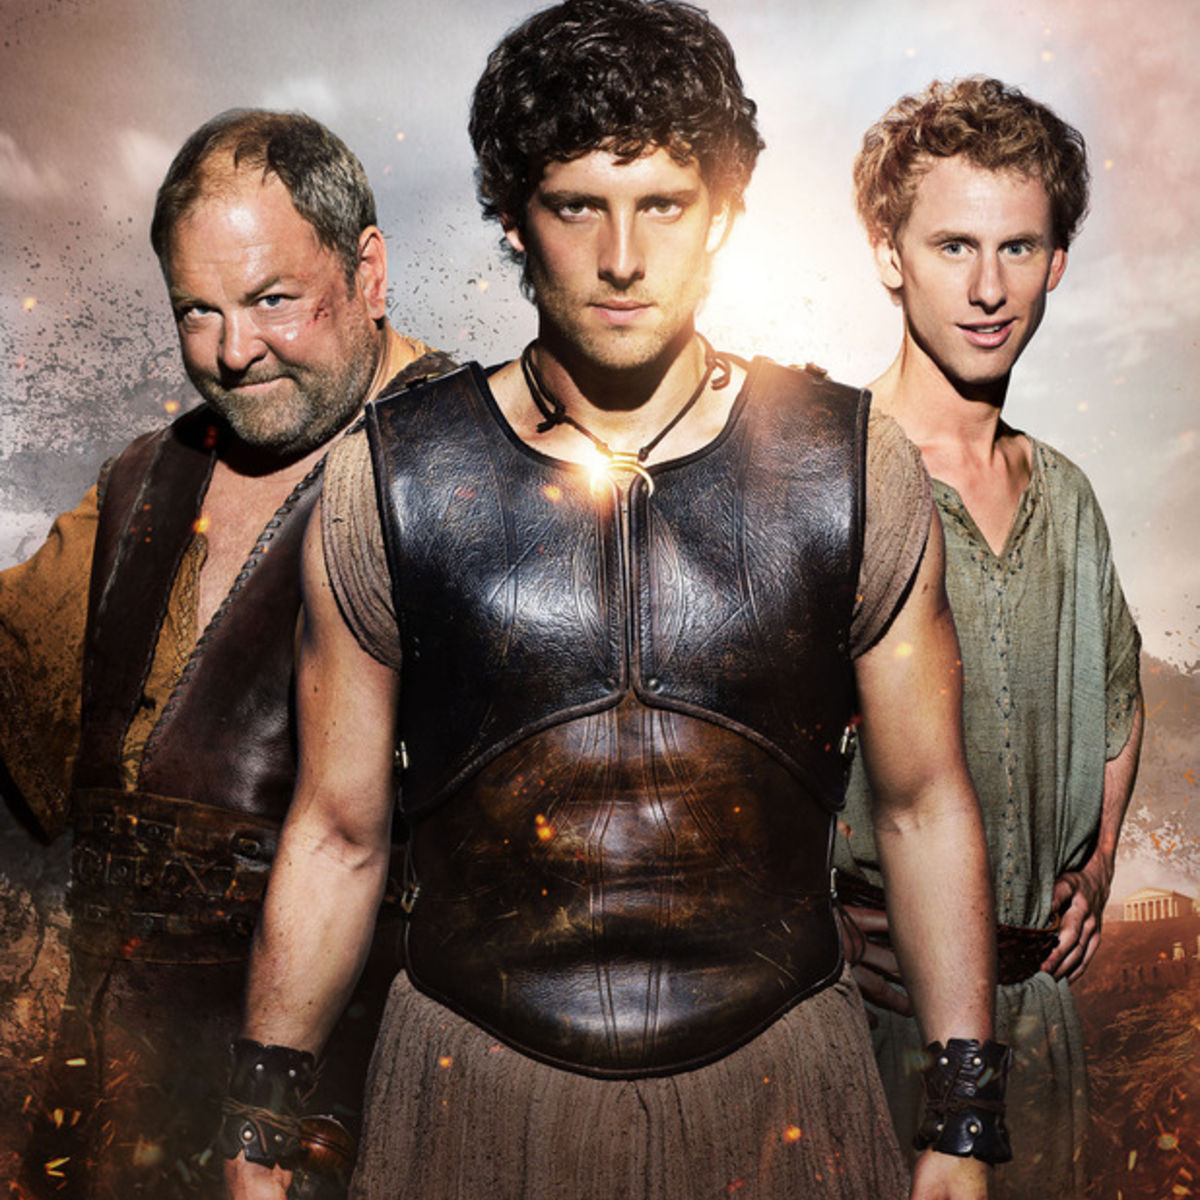 uktv-atlantis-mark-addy-jack-donnelly-robert-emms.jpg